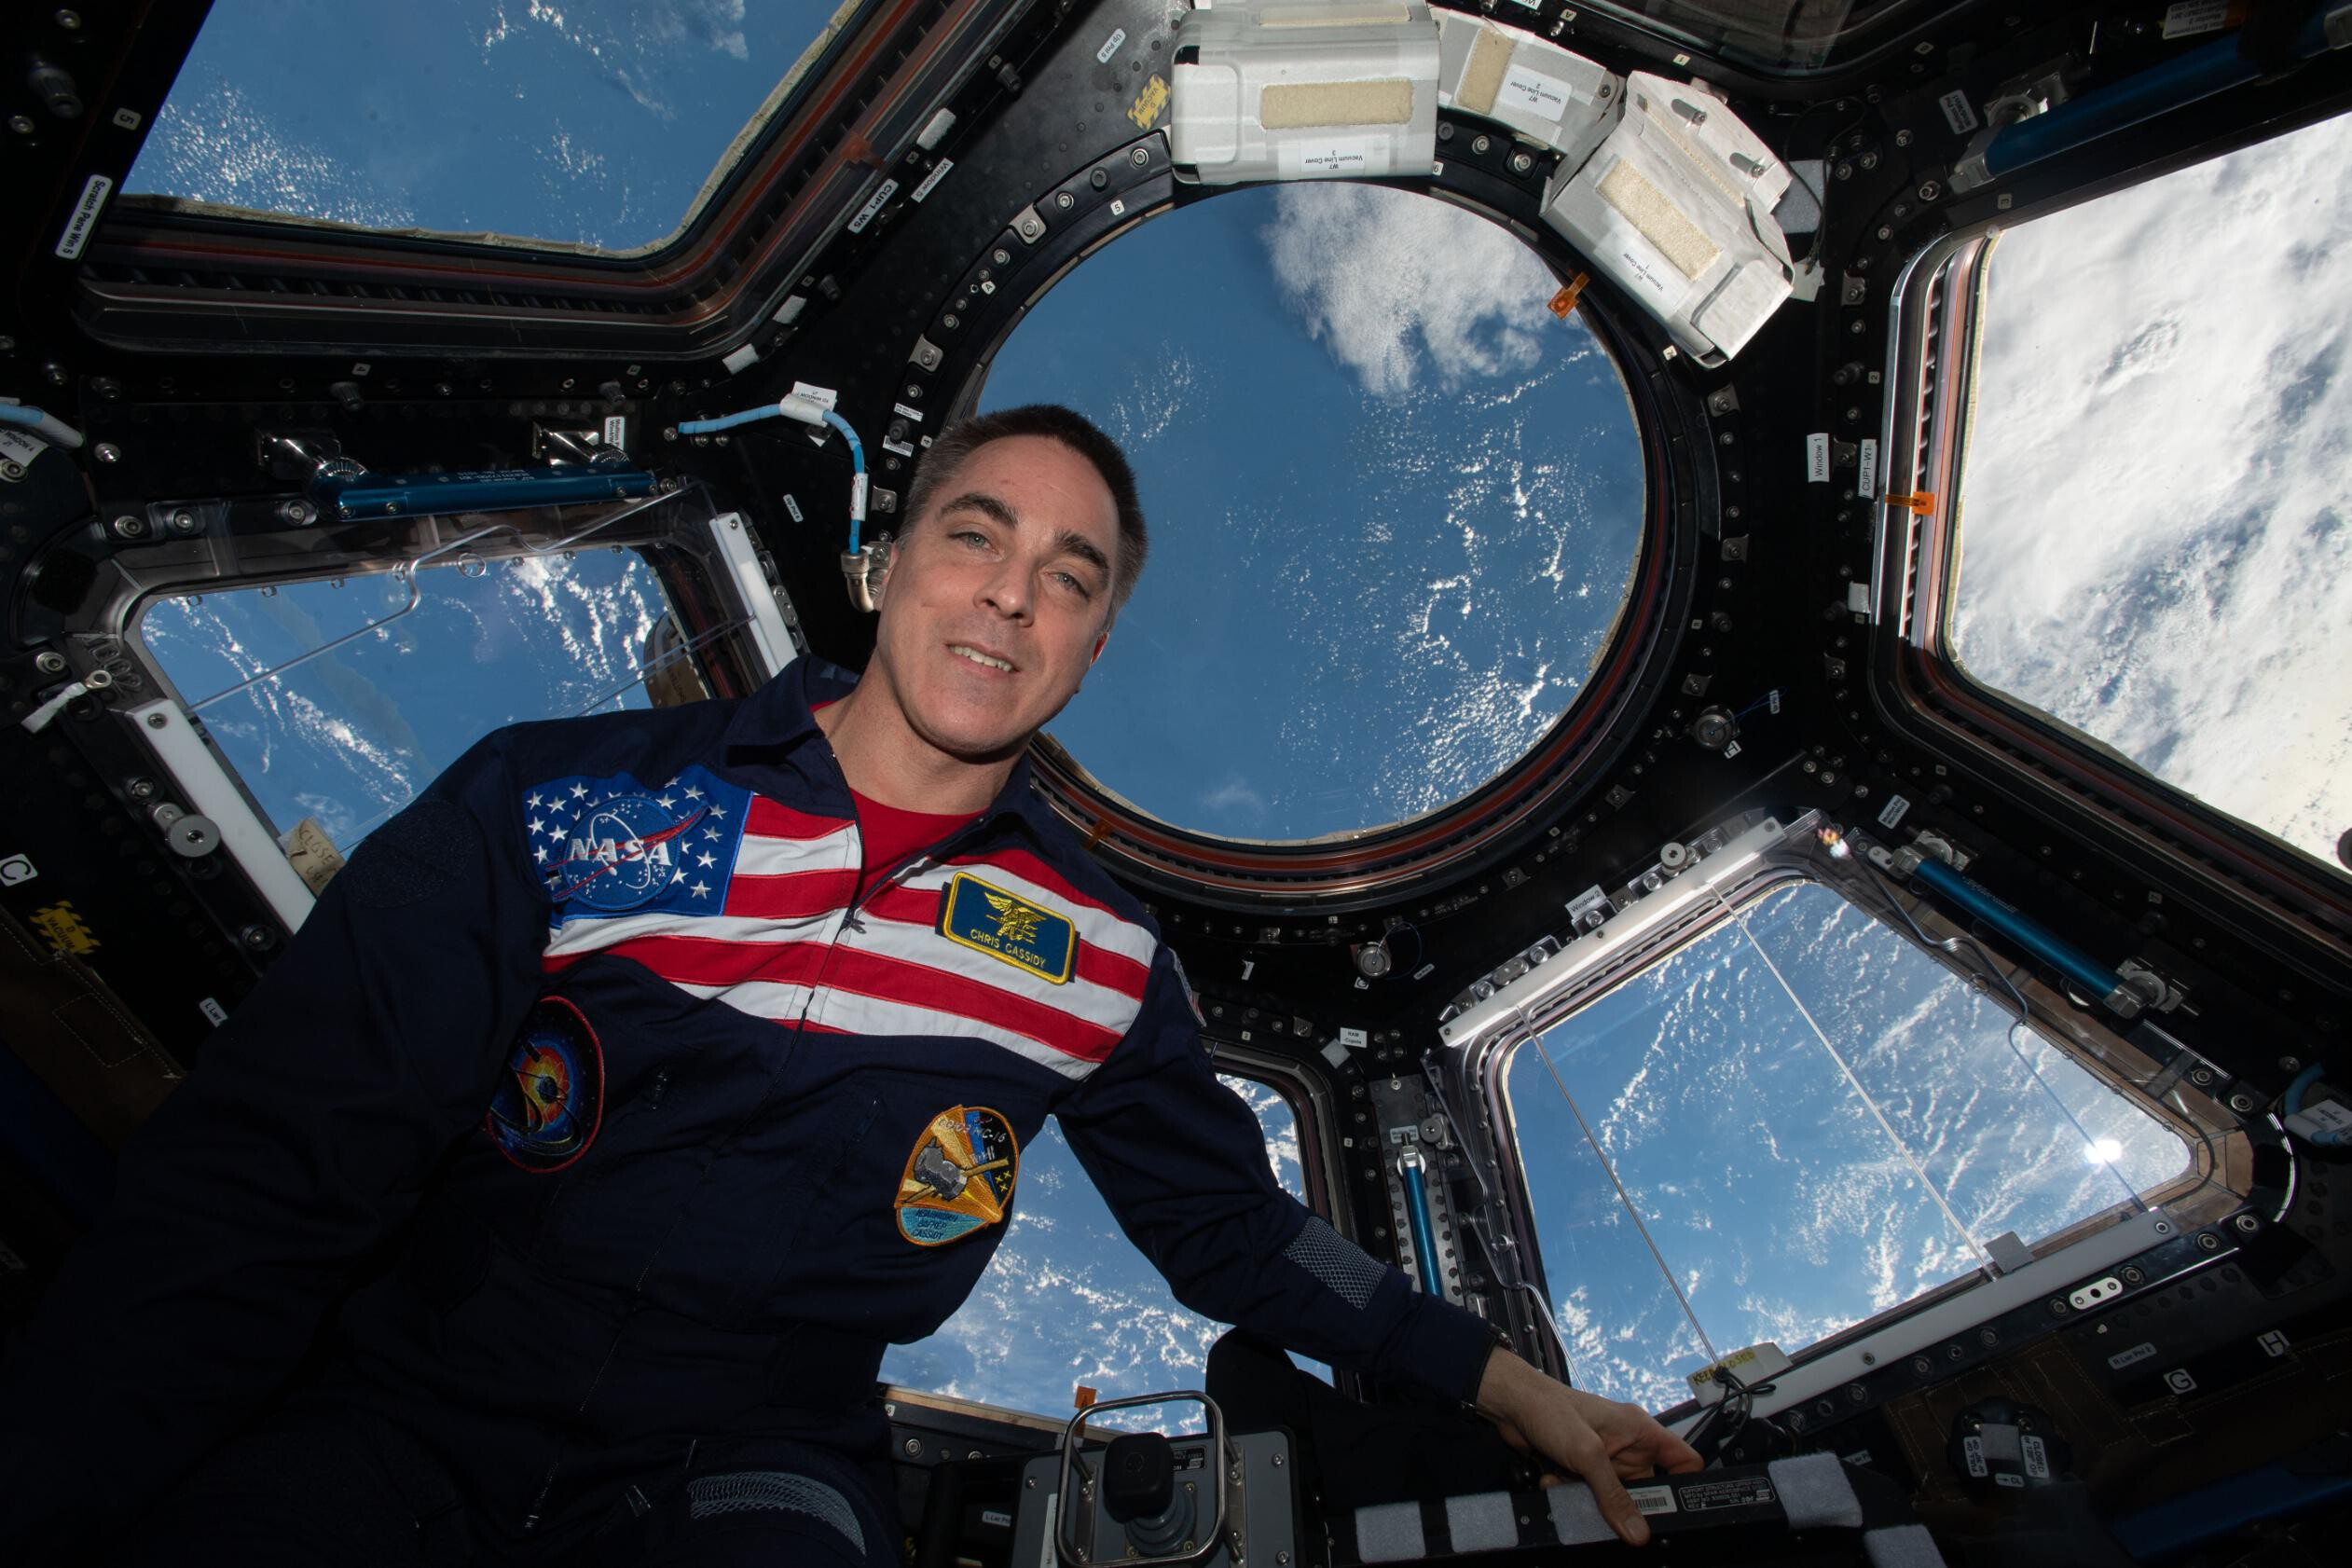 How a NASA astronaut fulfilled this 9/11 victim's space dream